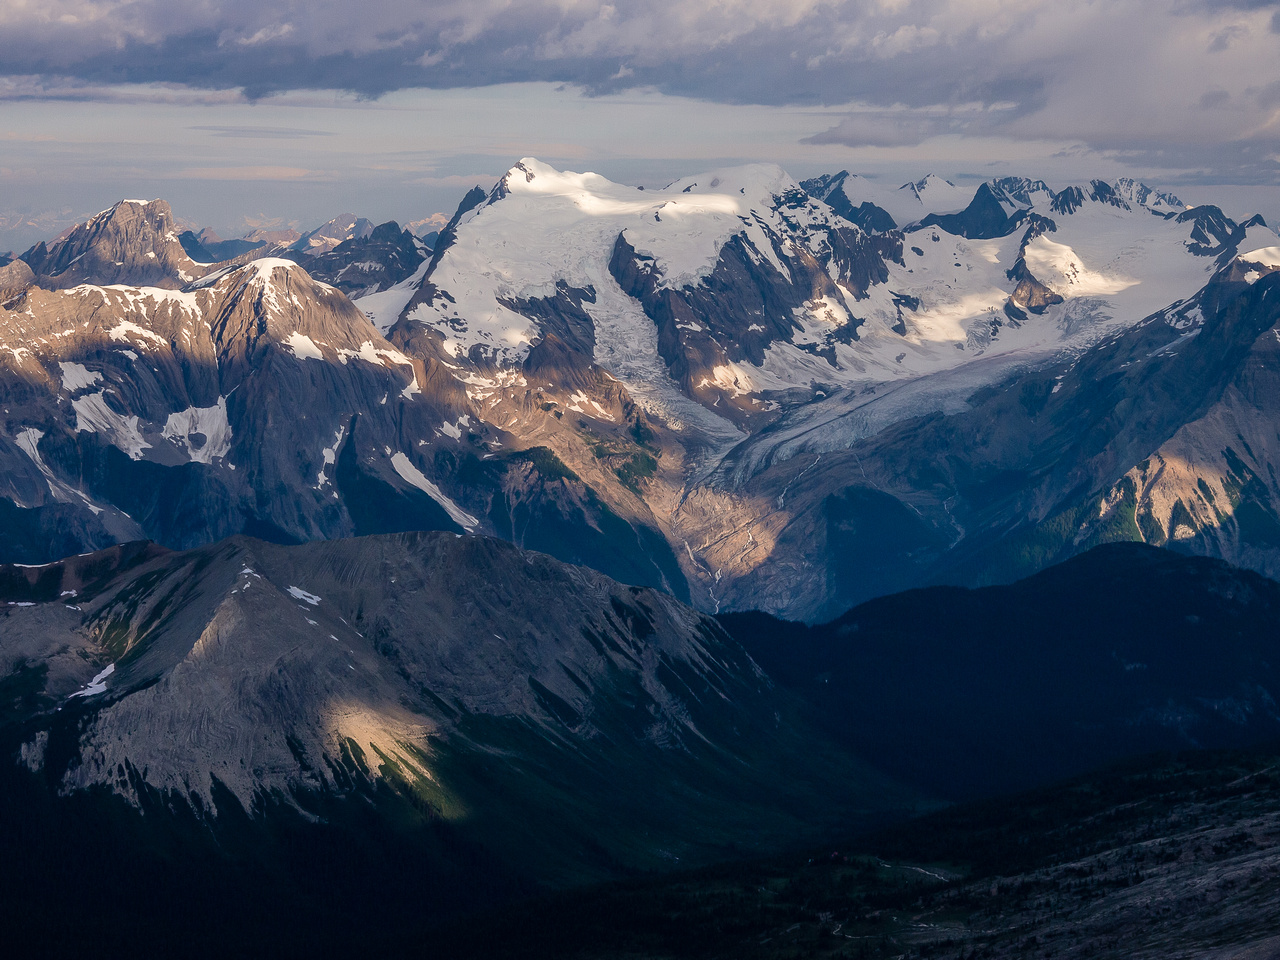 Looking over Amiskwi Lodge to the Mummery Icefield.